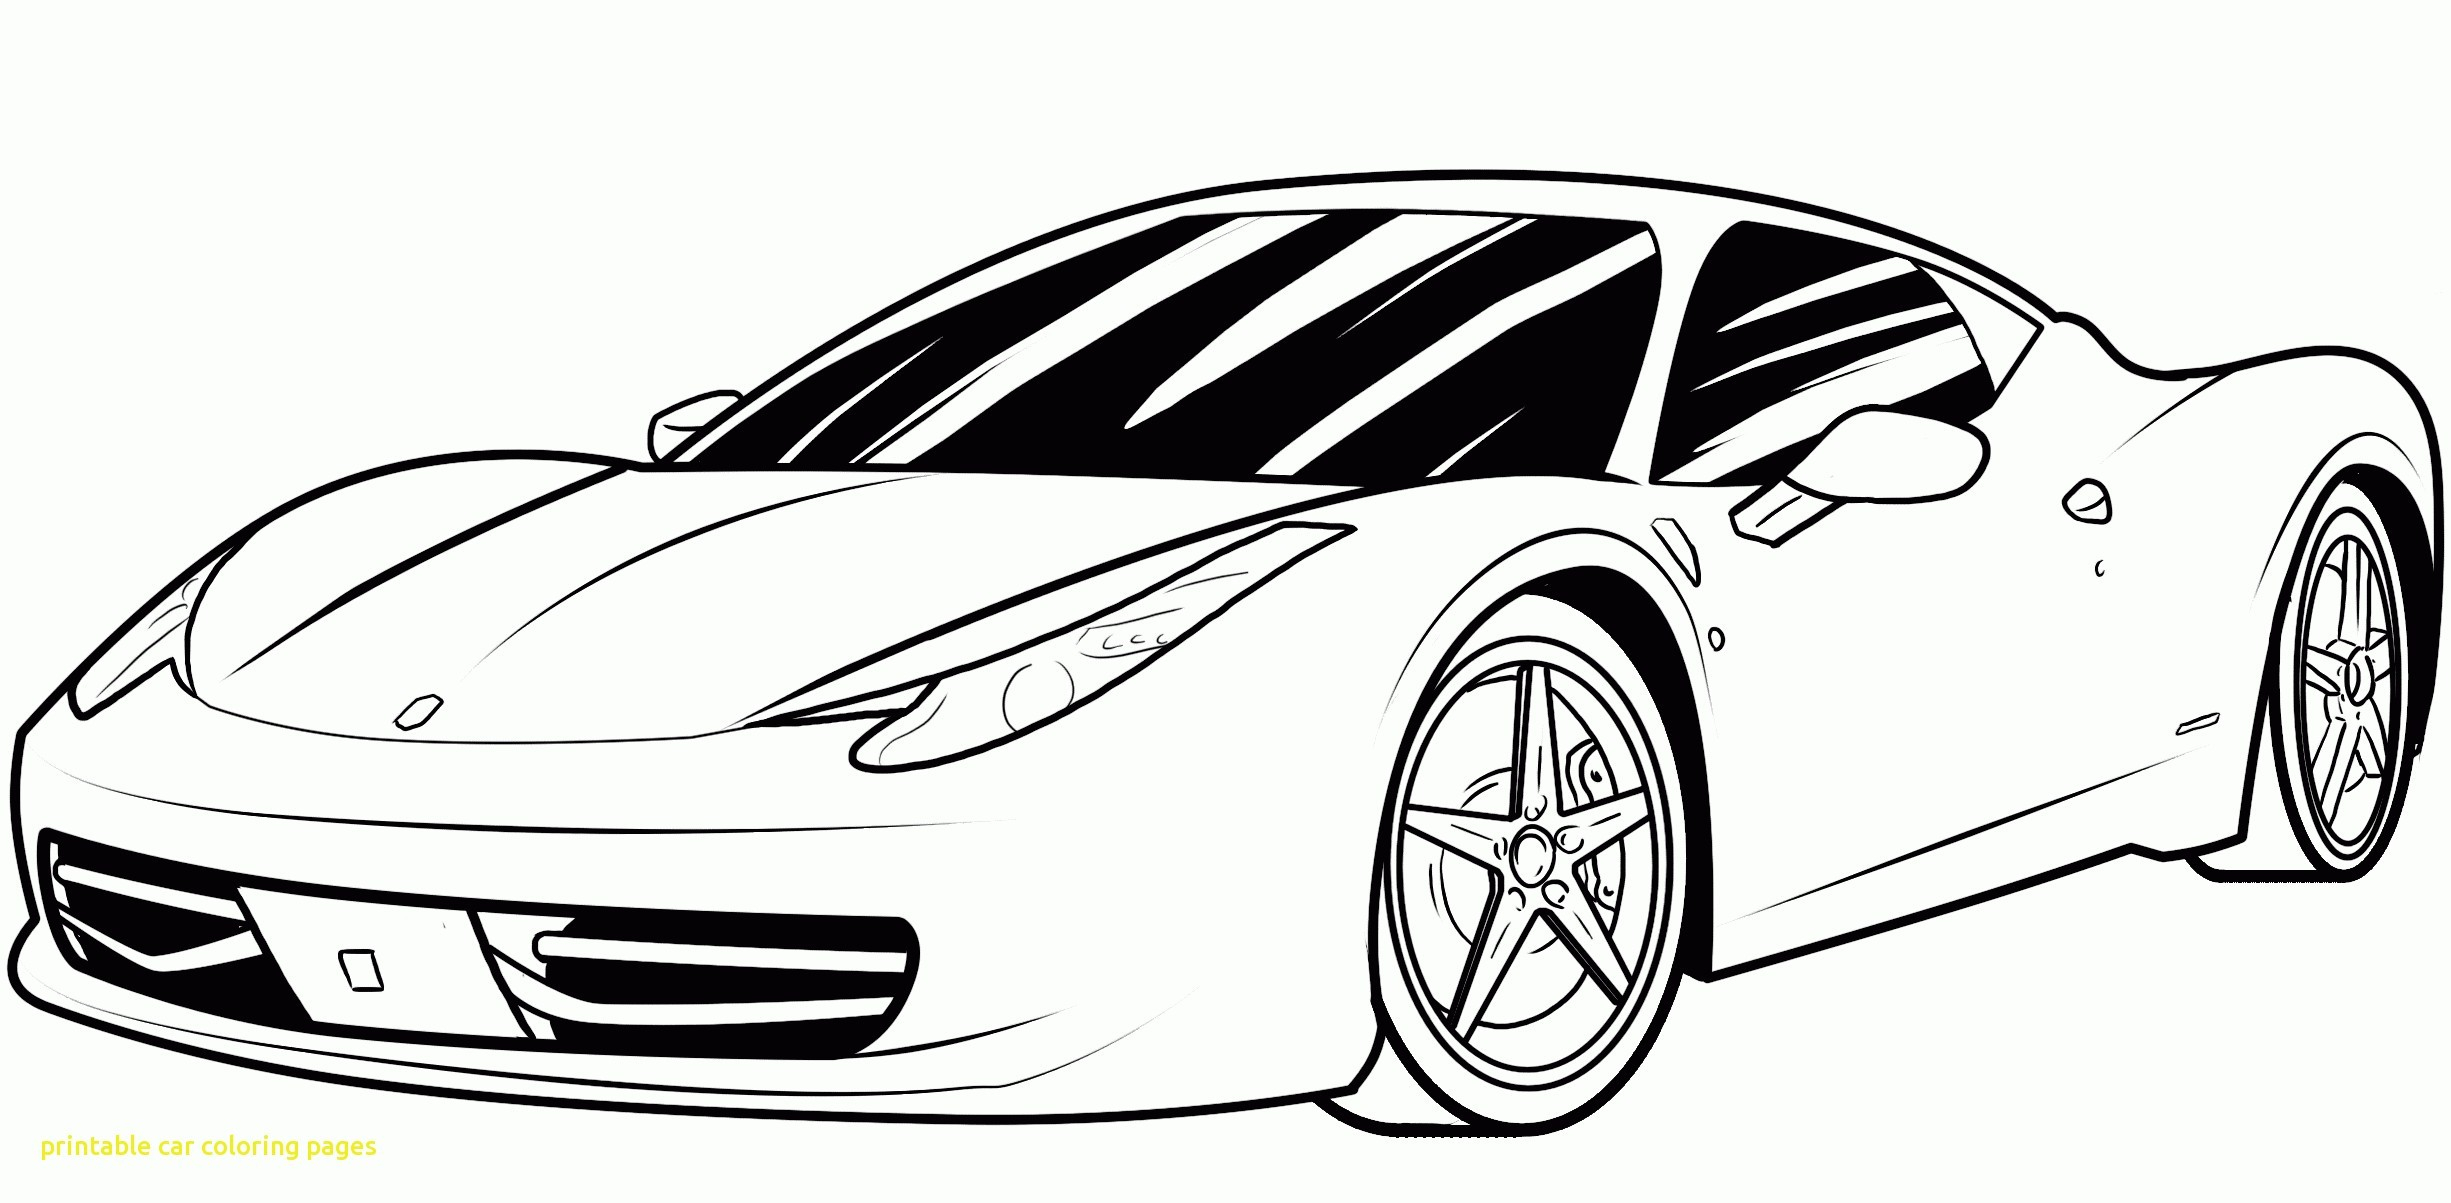 mustang coloring pages - coloring pages of ford mustangs collection free coloring